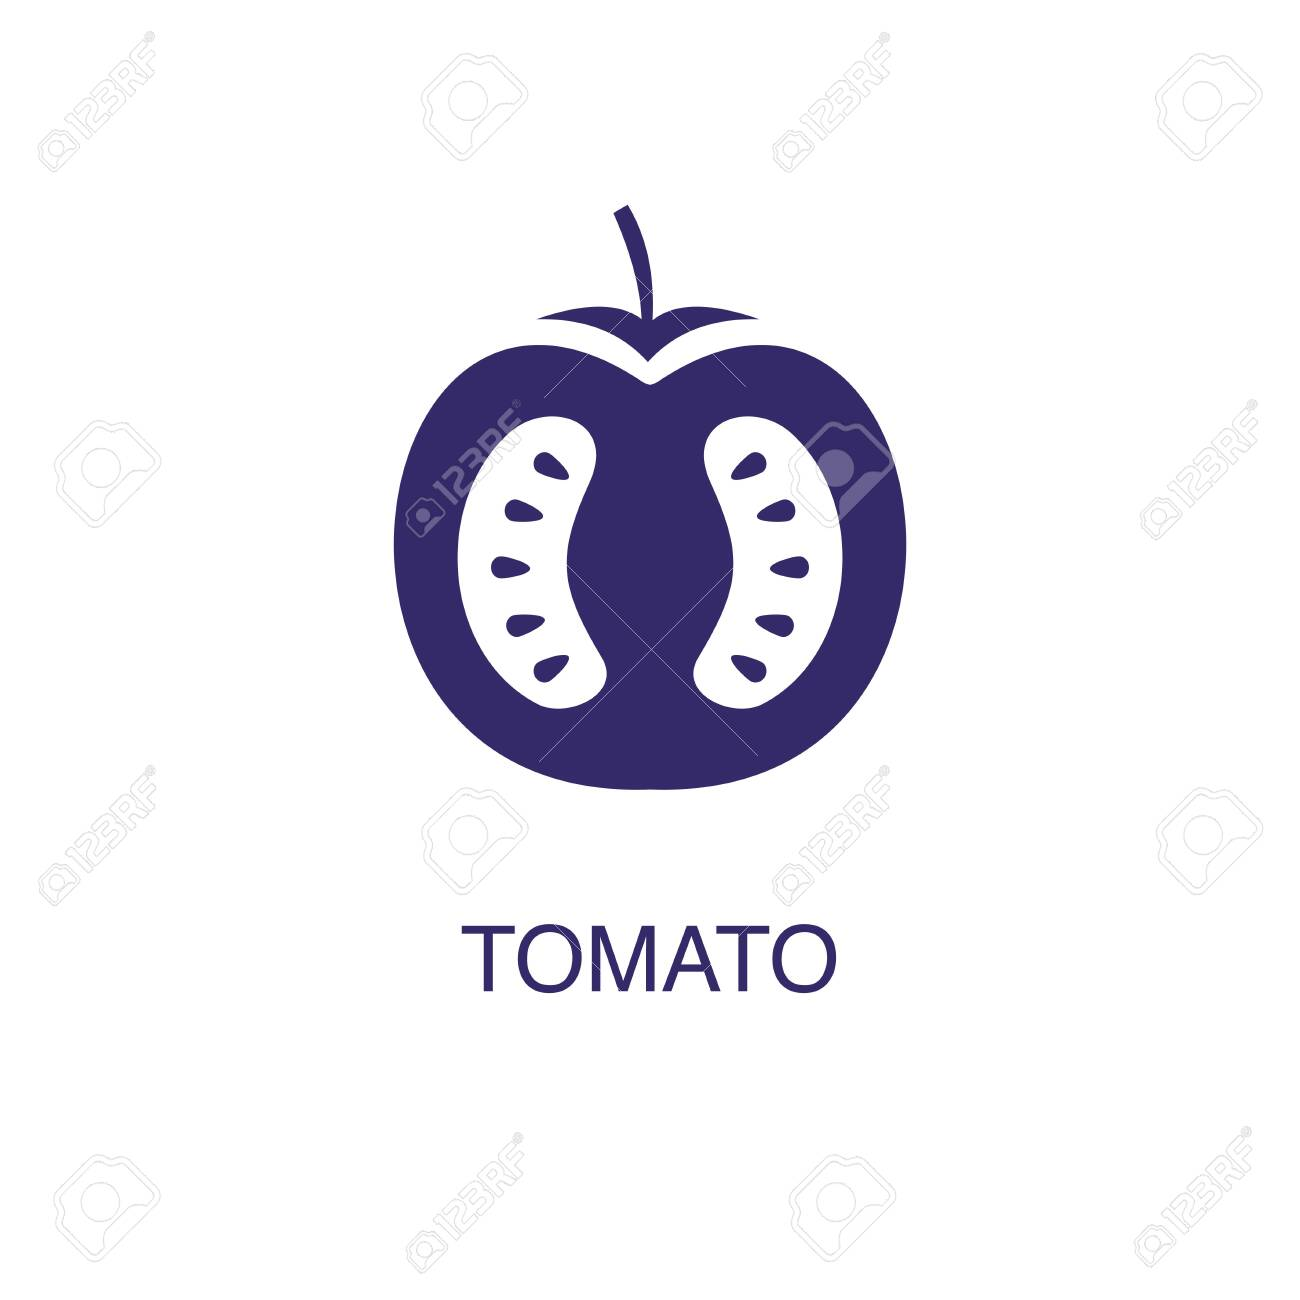 Tomato element in flat simple style on white background. Tomato icon, with text name concept template - 134450808